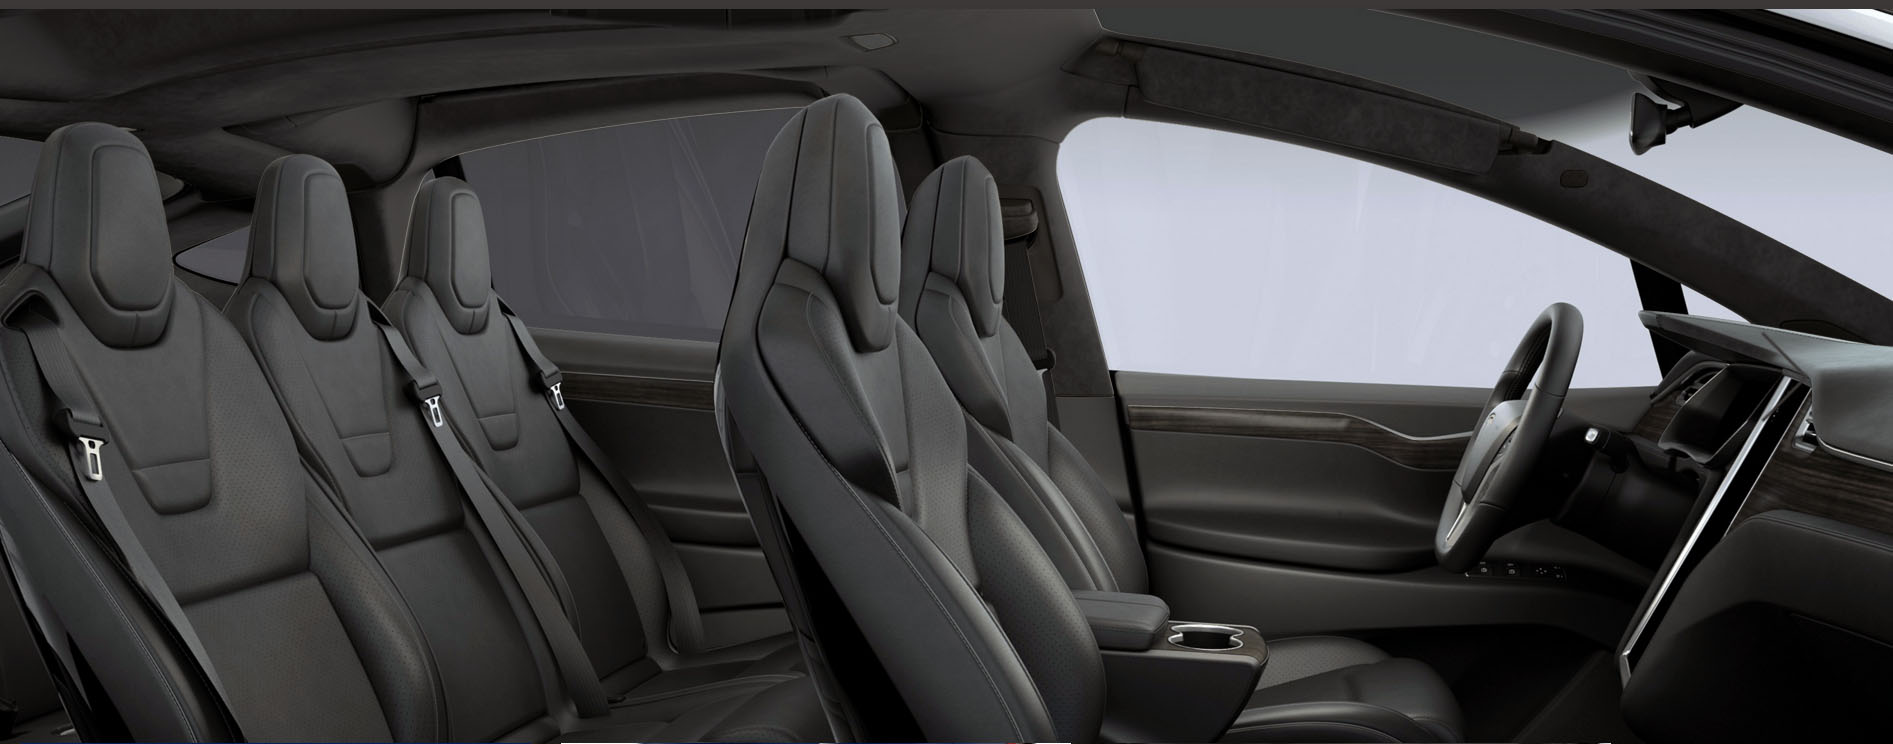 model X black leather, black headliner with matte obeche.jpg